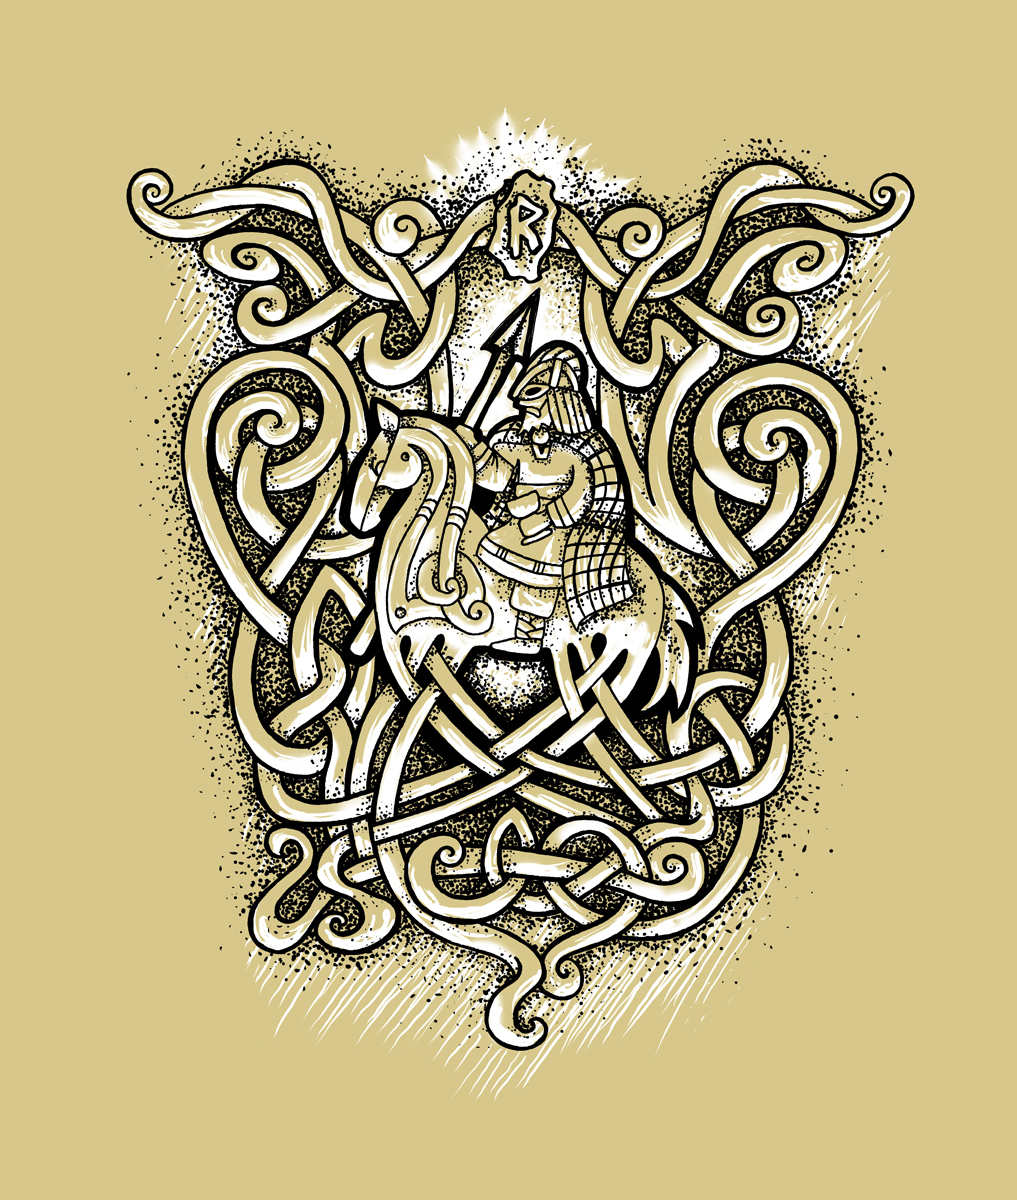 Odin and Sleipnir Tattoo Design with Valknut and Knotwork Motif - Detailed Design Colour - Fineliner Pen Drawing by Imogen Smid